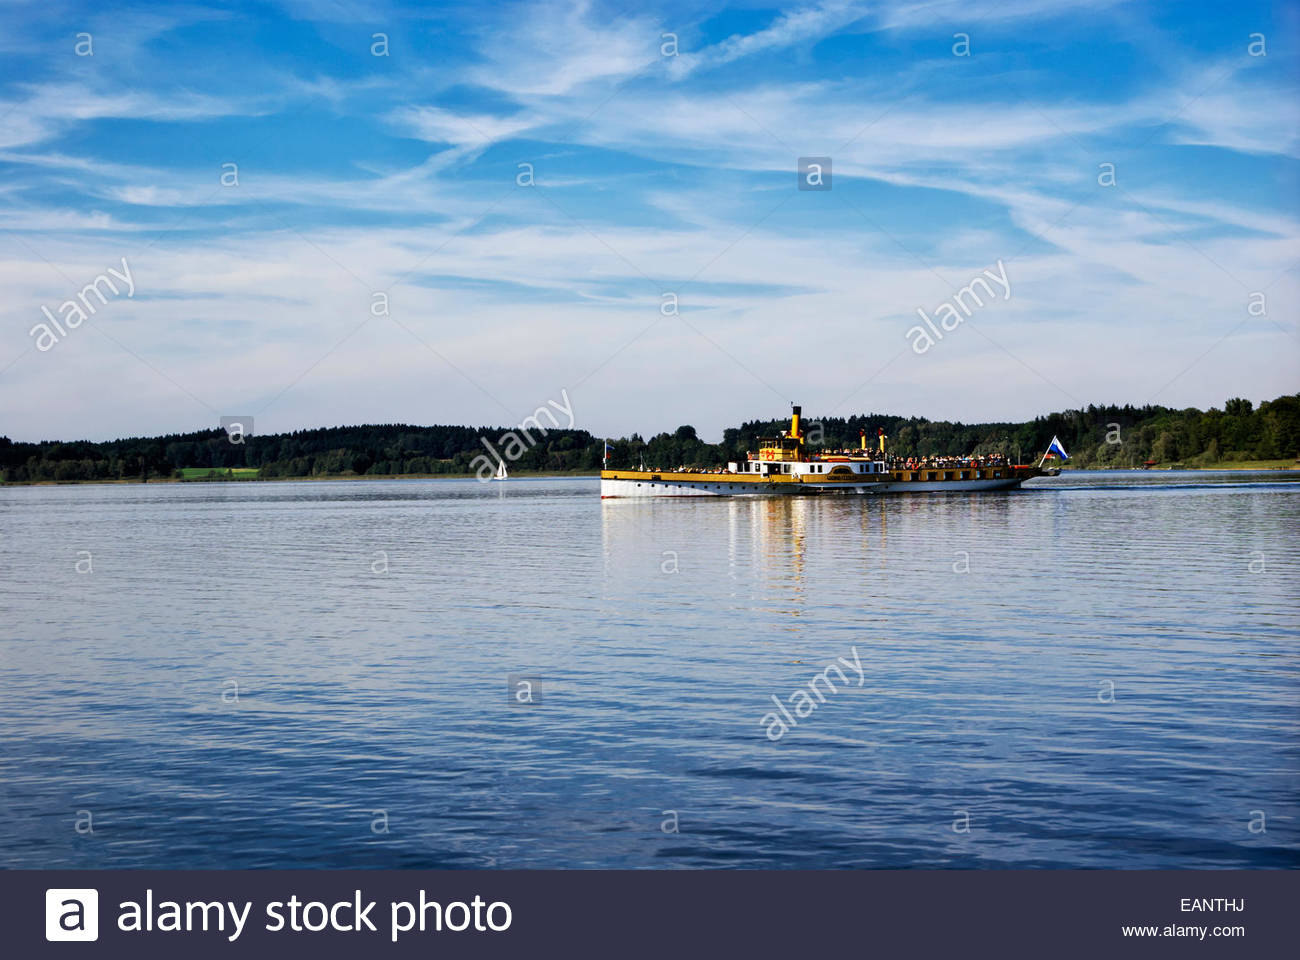 Chiemsee-Schifffahrt Ludwig Feßler (Fessler) KG can be seen traversing the Chiemsee 365 days a year. - Stock Image